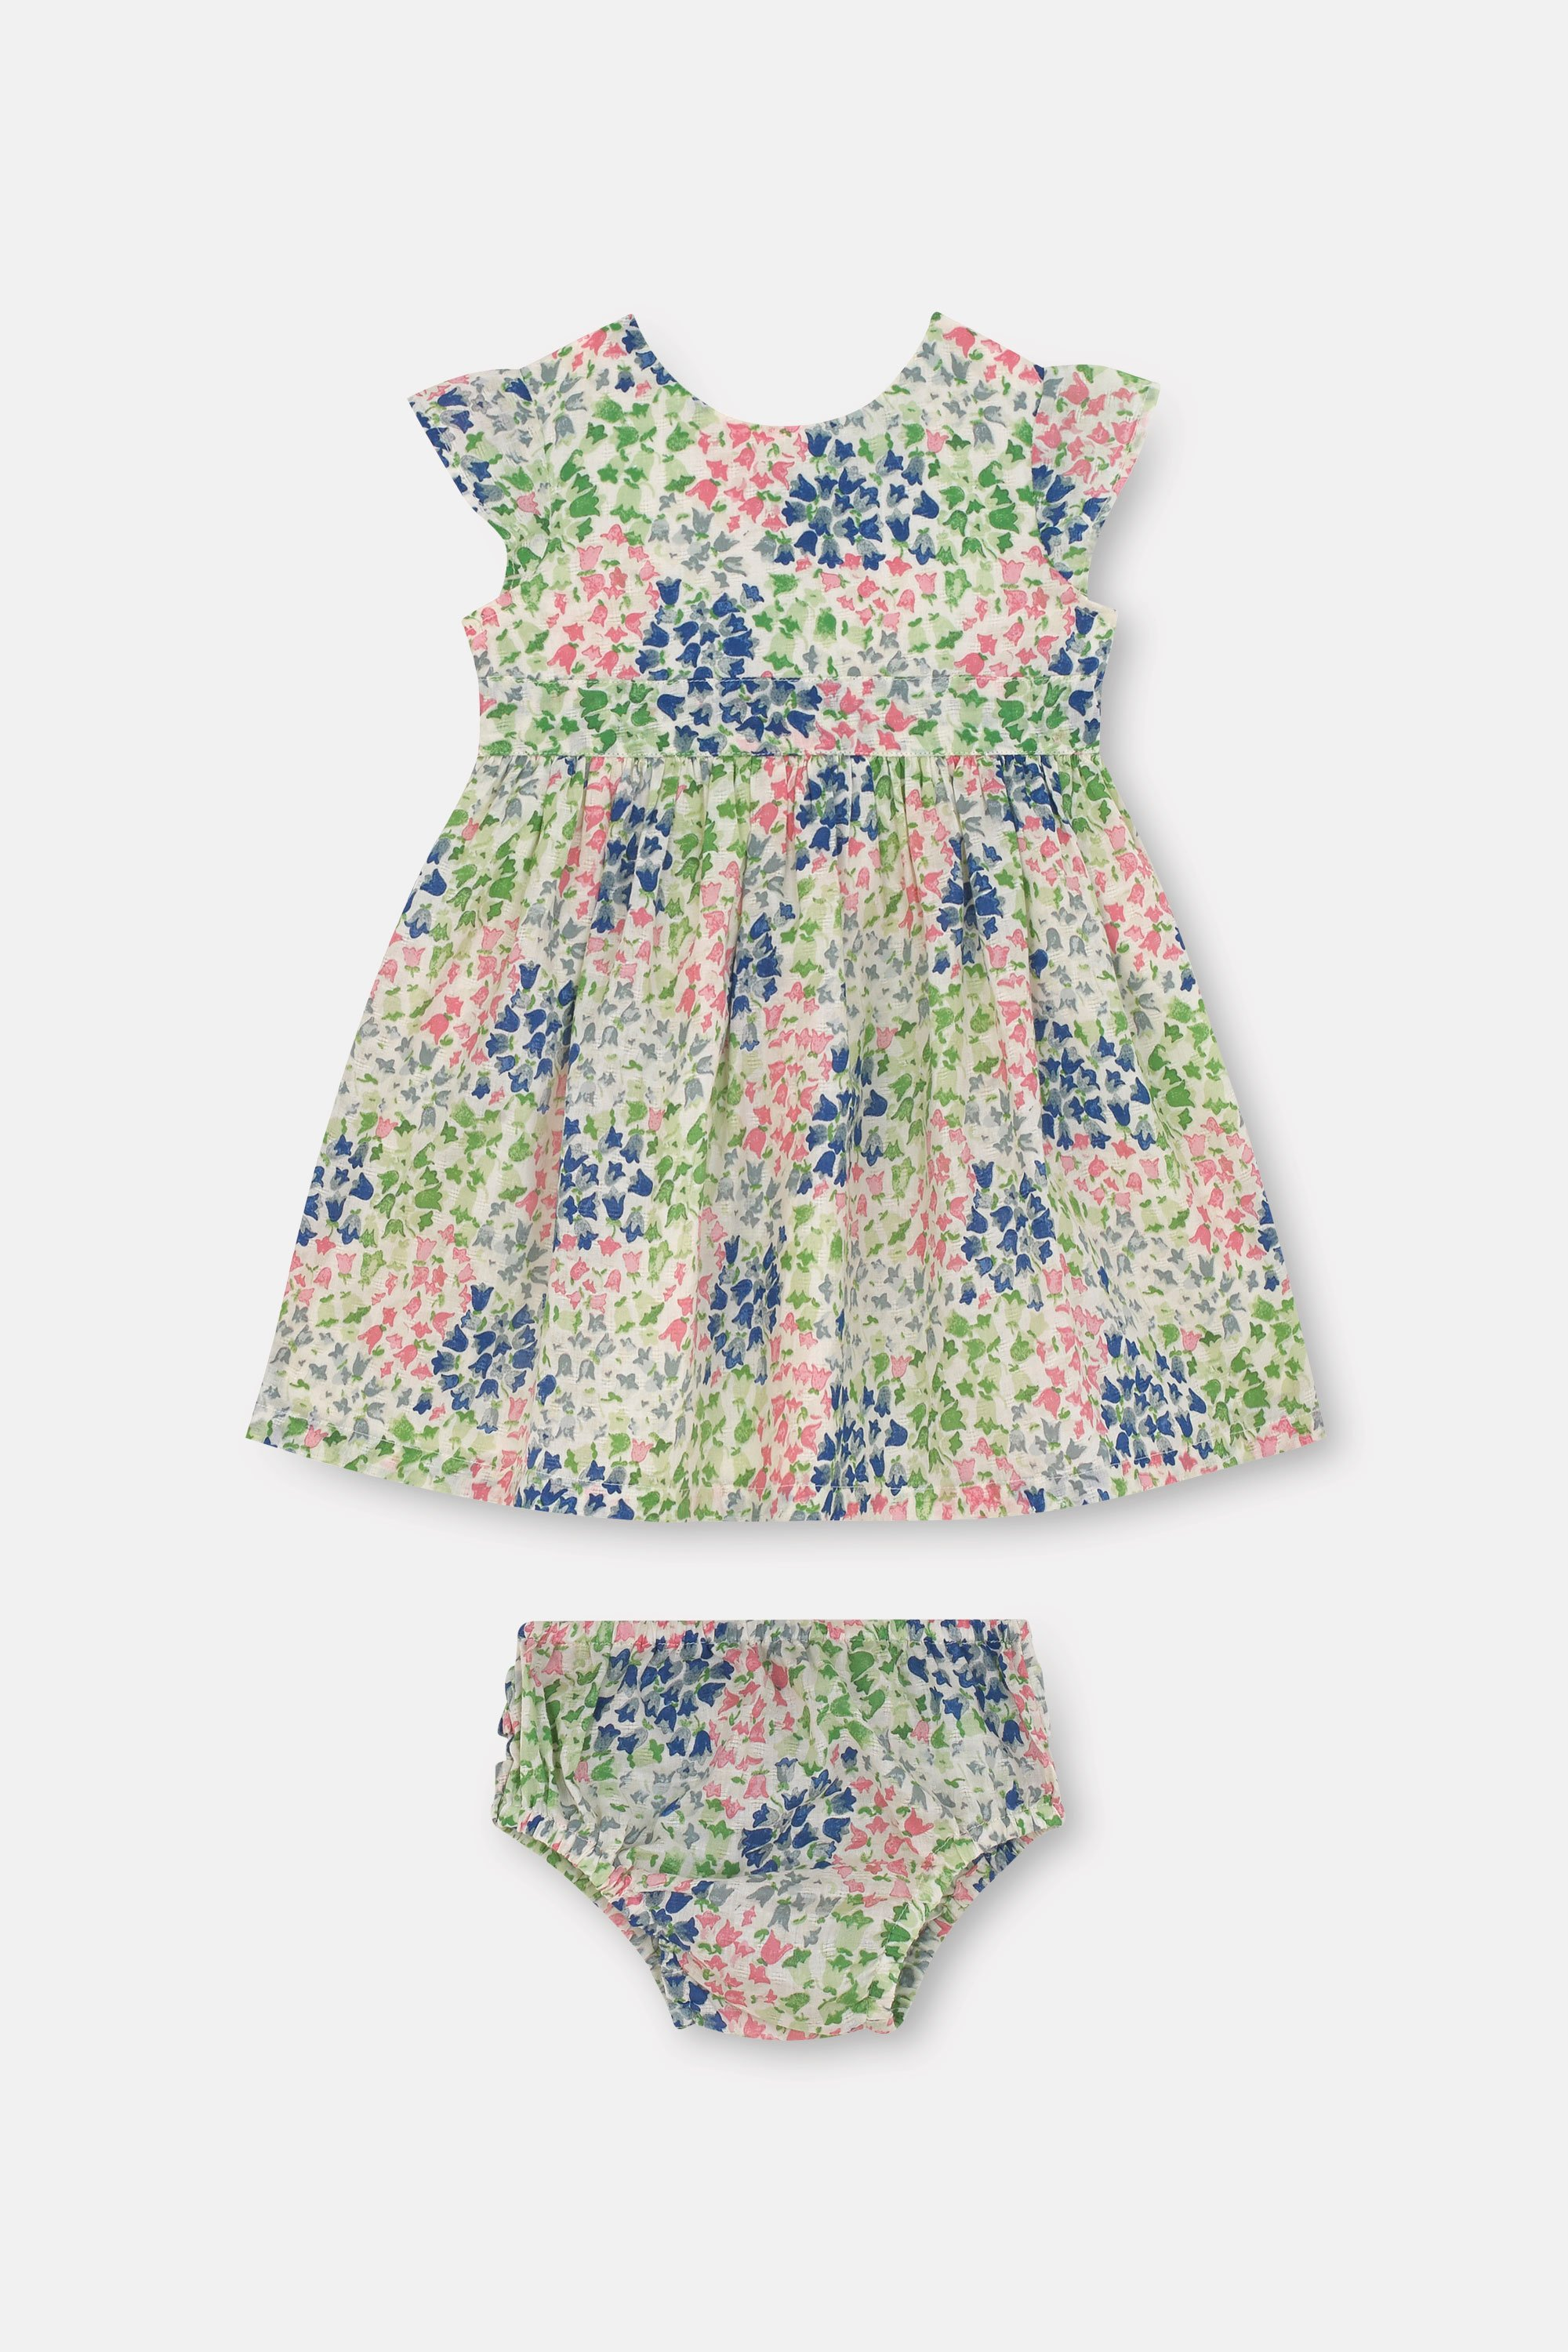 Cath Kidston Tiny Painted Bluebell Baby Ayda Dress in Warm Cream, 9-12 Mo